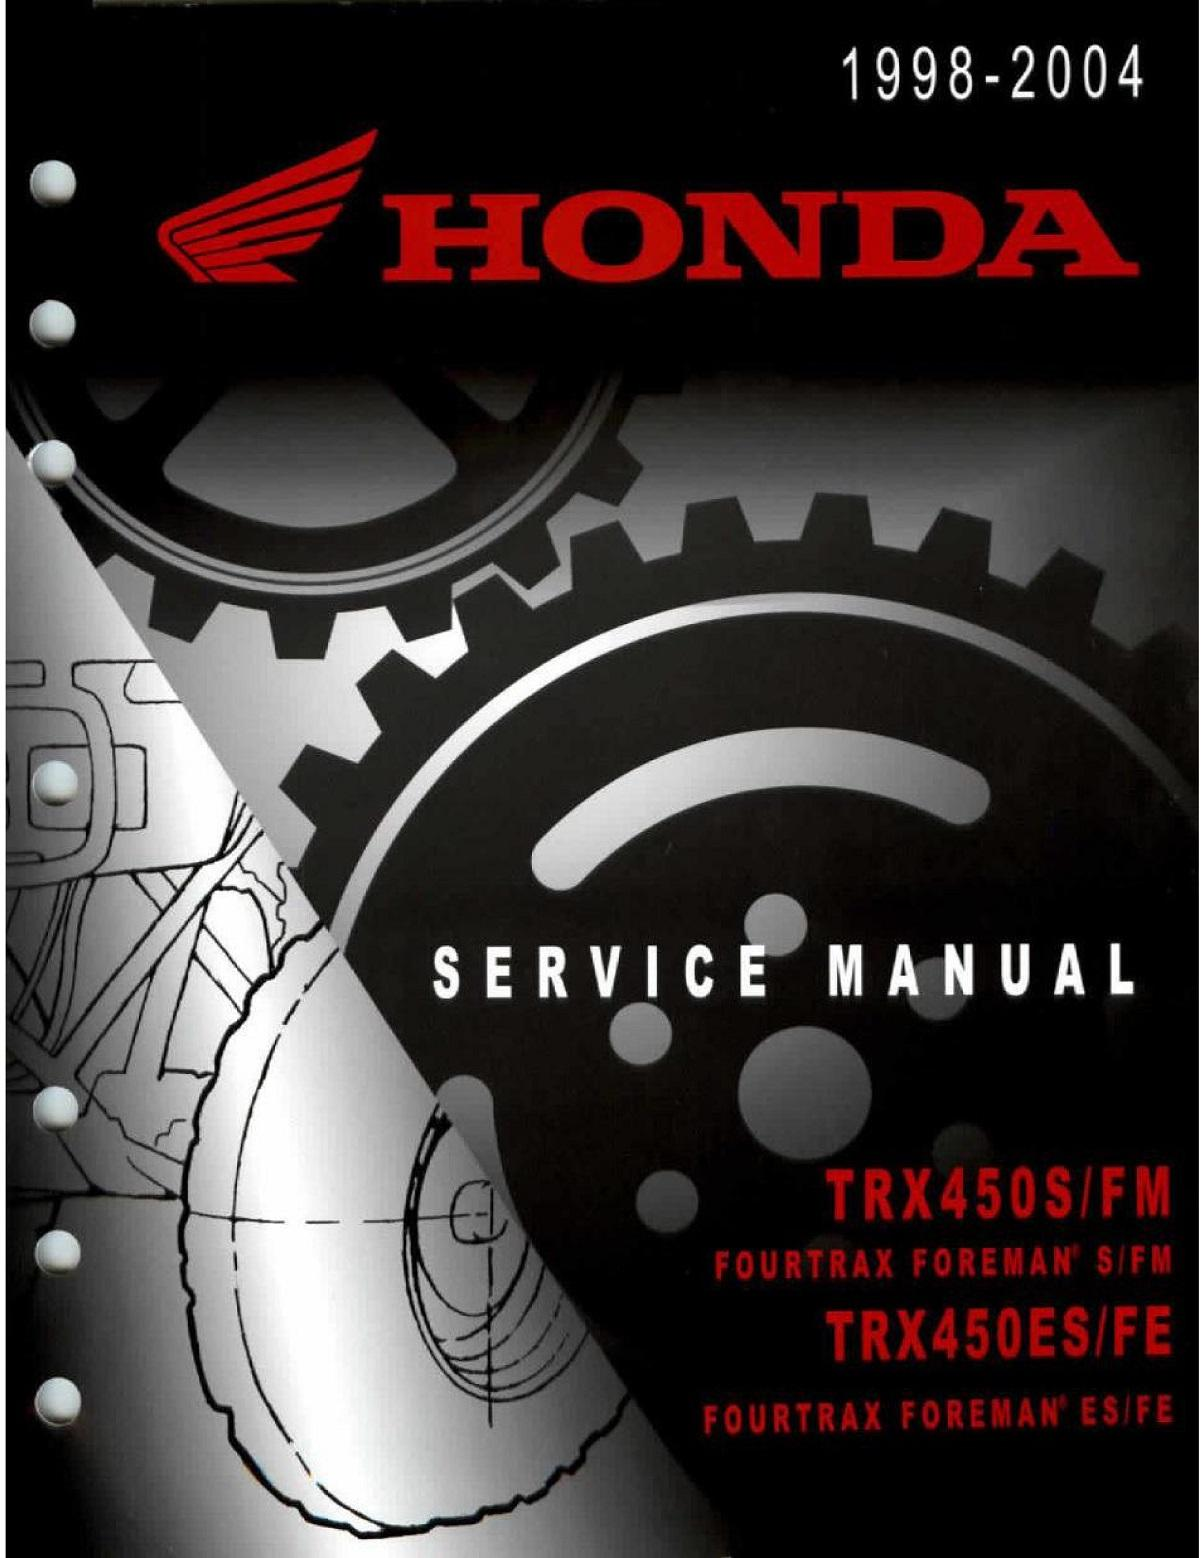 Workshop Manual for Honda TRX450ES (1998-2004)